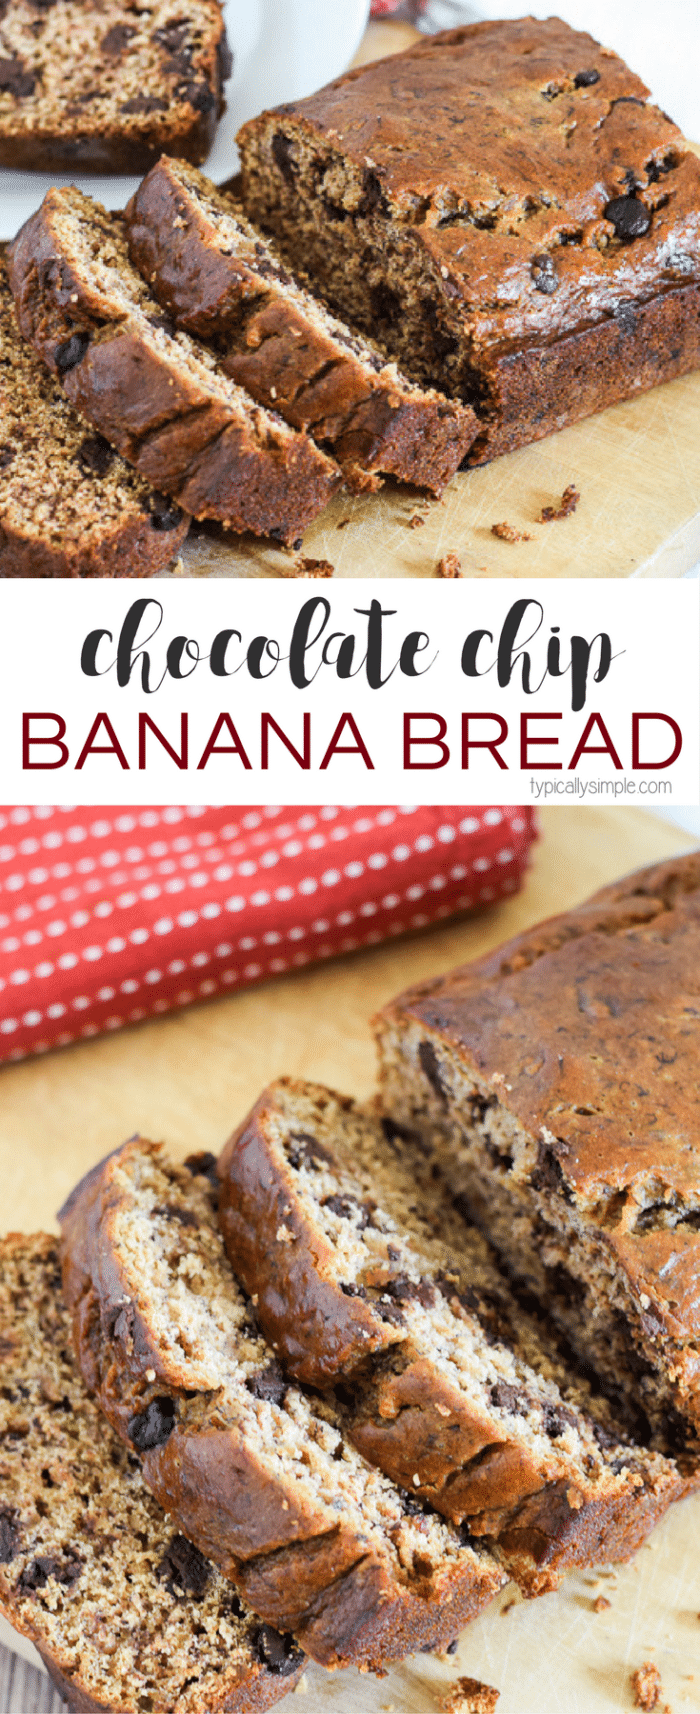 With just a few basic ingredients and some really ripe bananas, whip up this Chocolate Chip Banana Bread recipe in no time! Plus you only need one bowl to make this recipe which means easy clean-up! #bananabread #breakfastrecipe